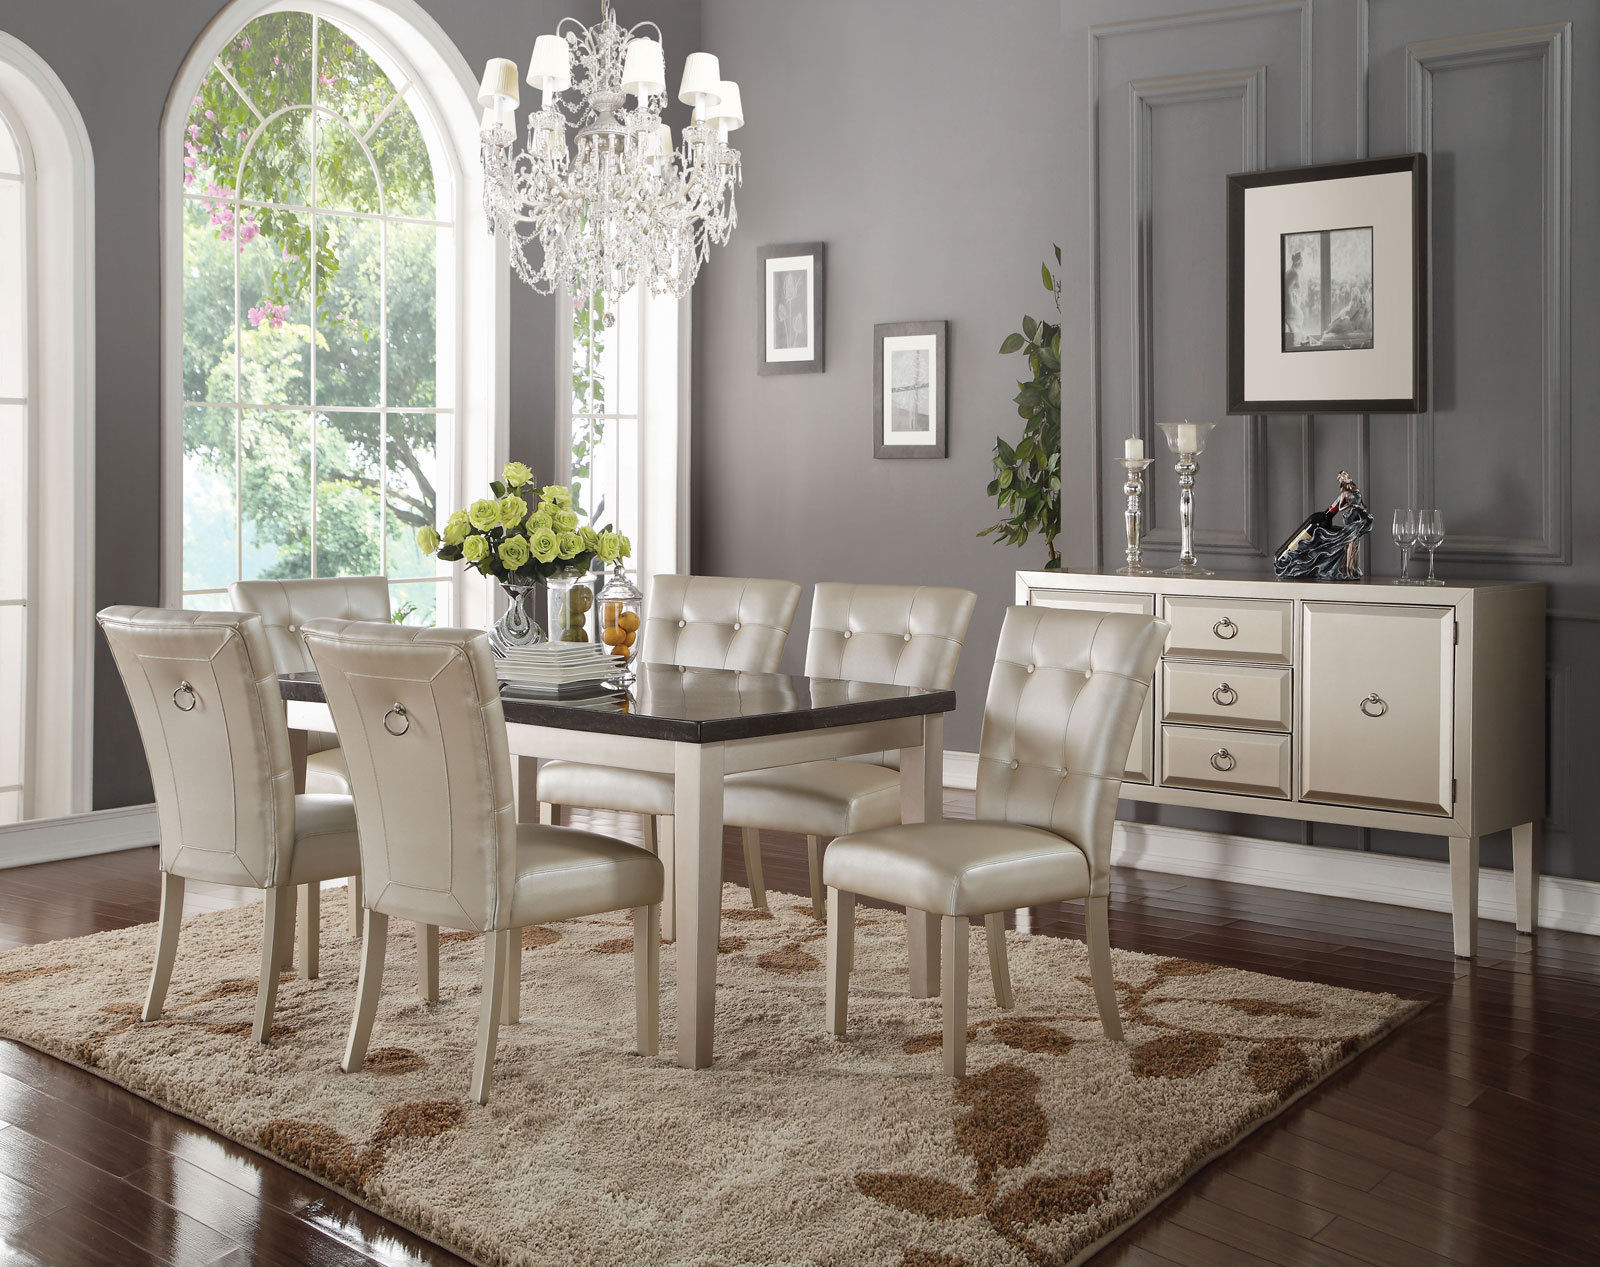 New Modern Dining Room Set 7 Pieces Rectangular Marble